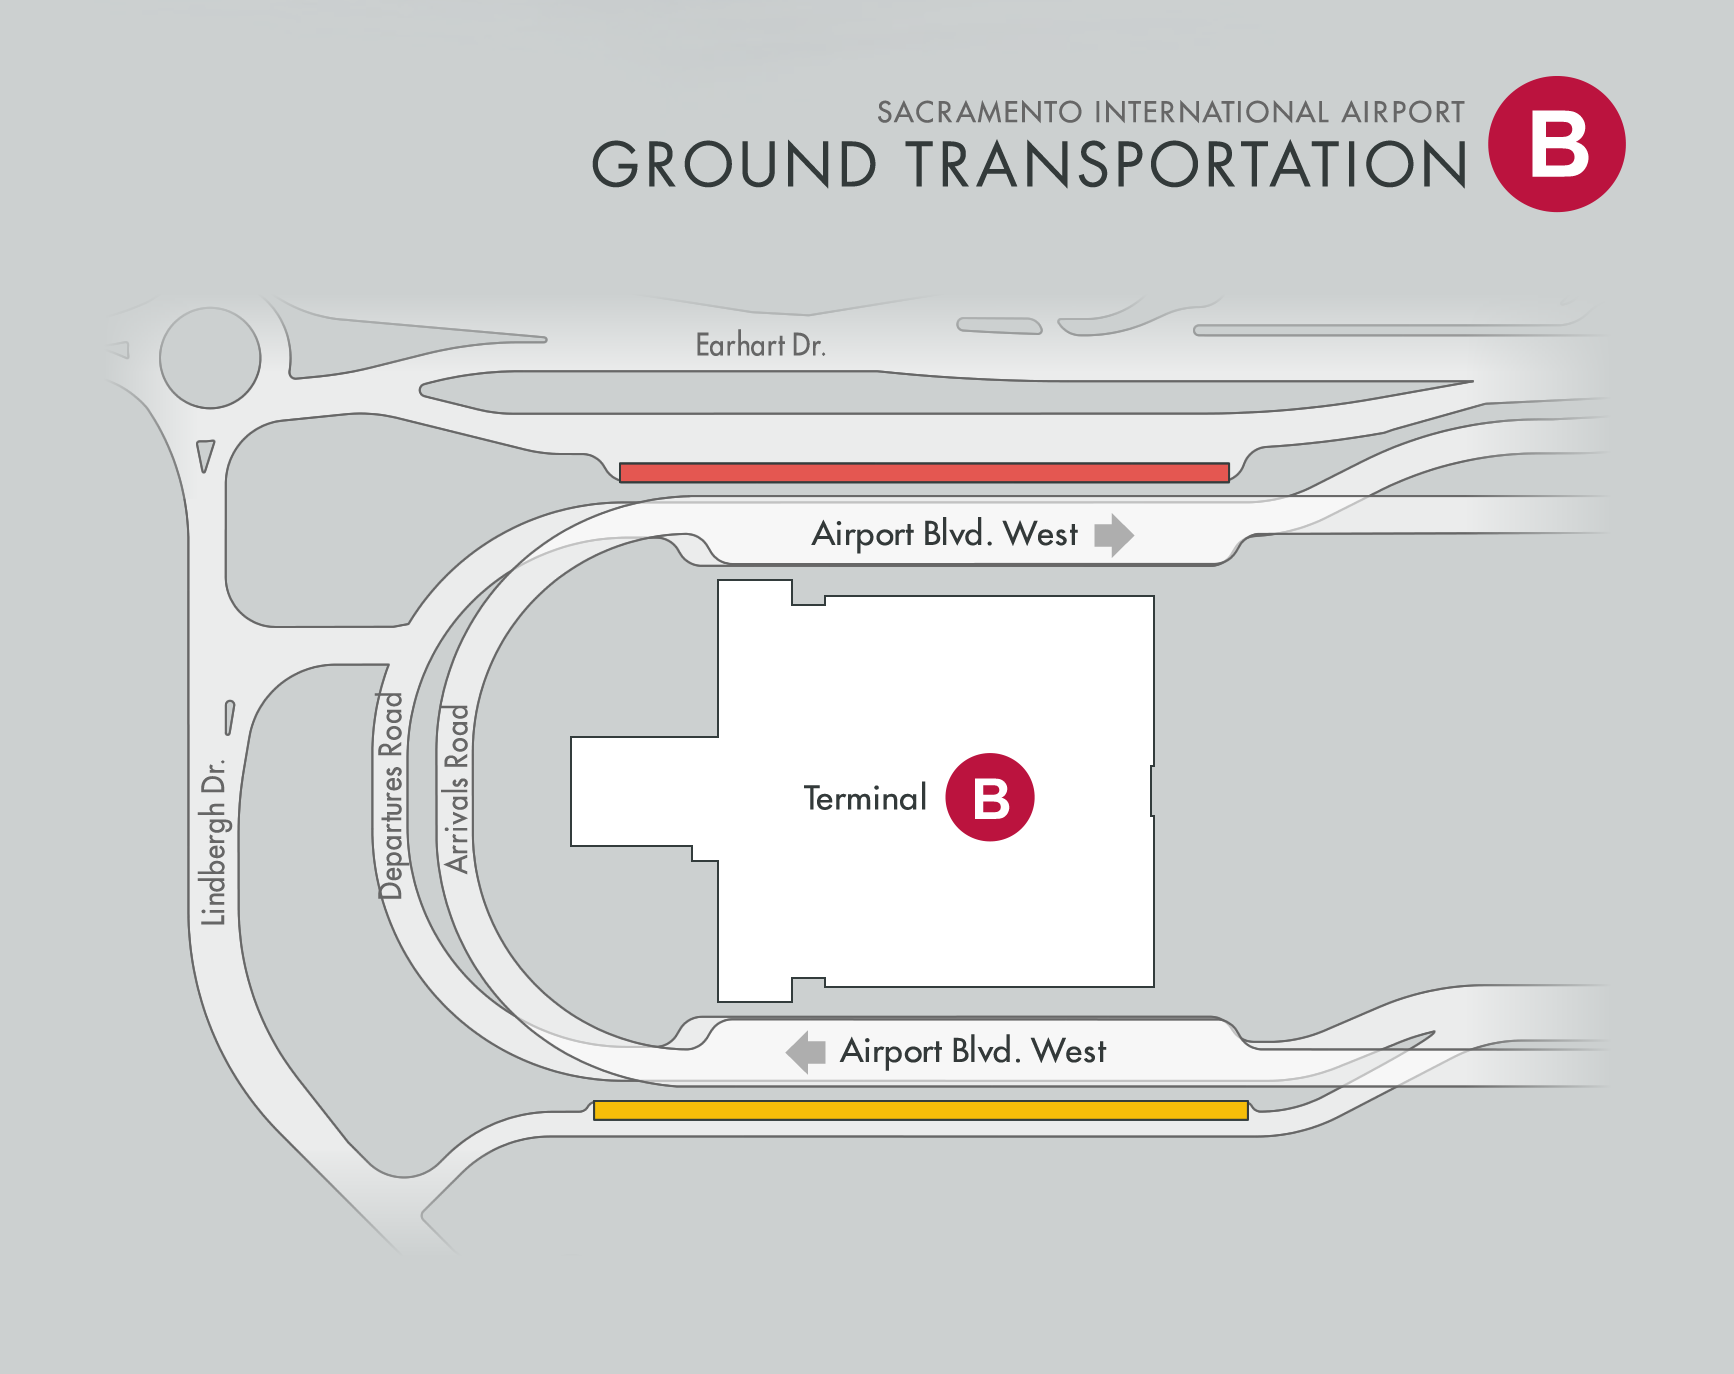 """Map Of Sacramento Airport SMF > Maps"""" title=""""Map Of Sacramento Airport SMF > Maps"""" width=""""200″ height=""""200″> <img src="""